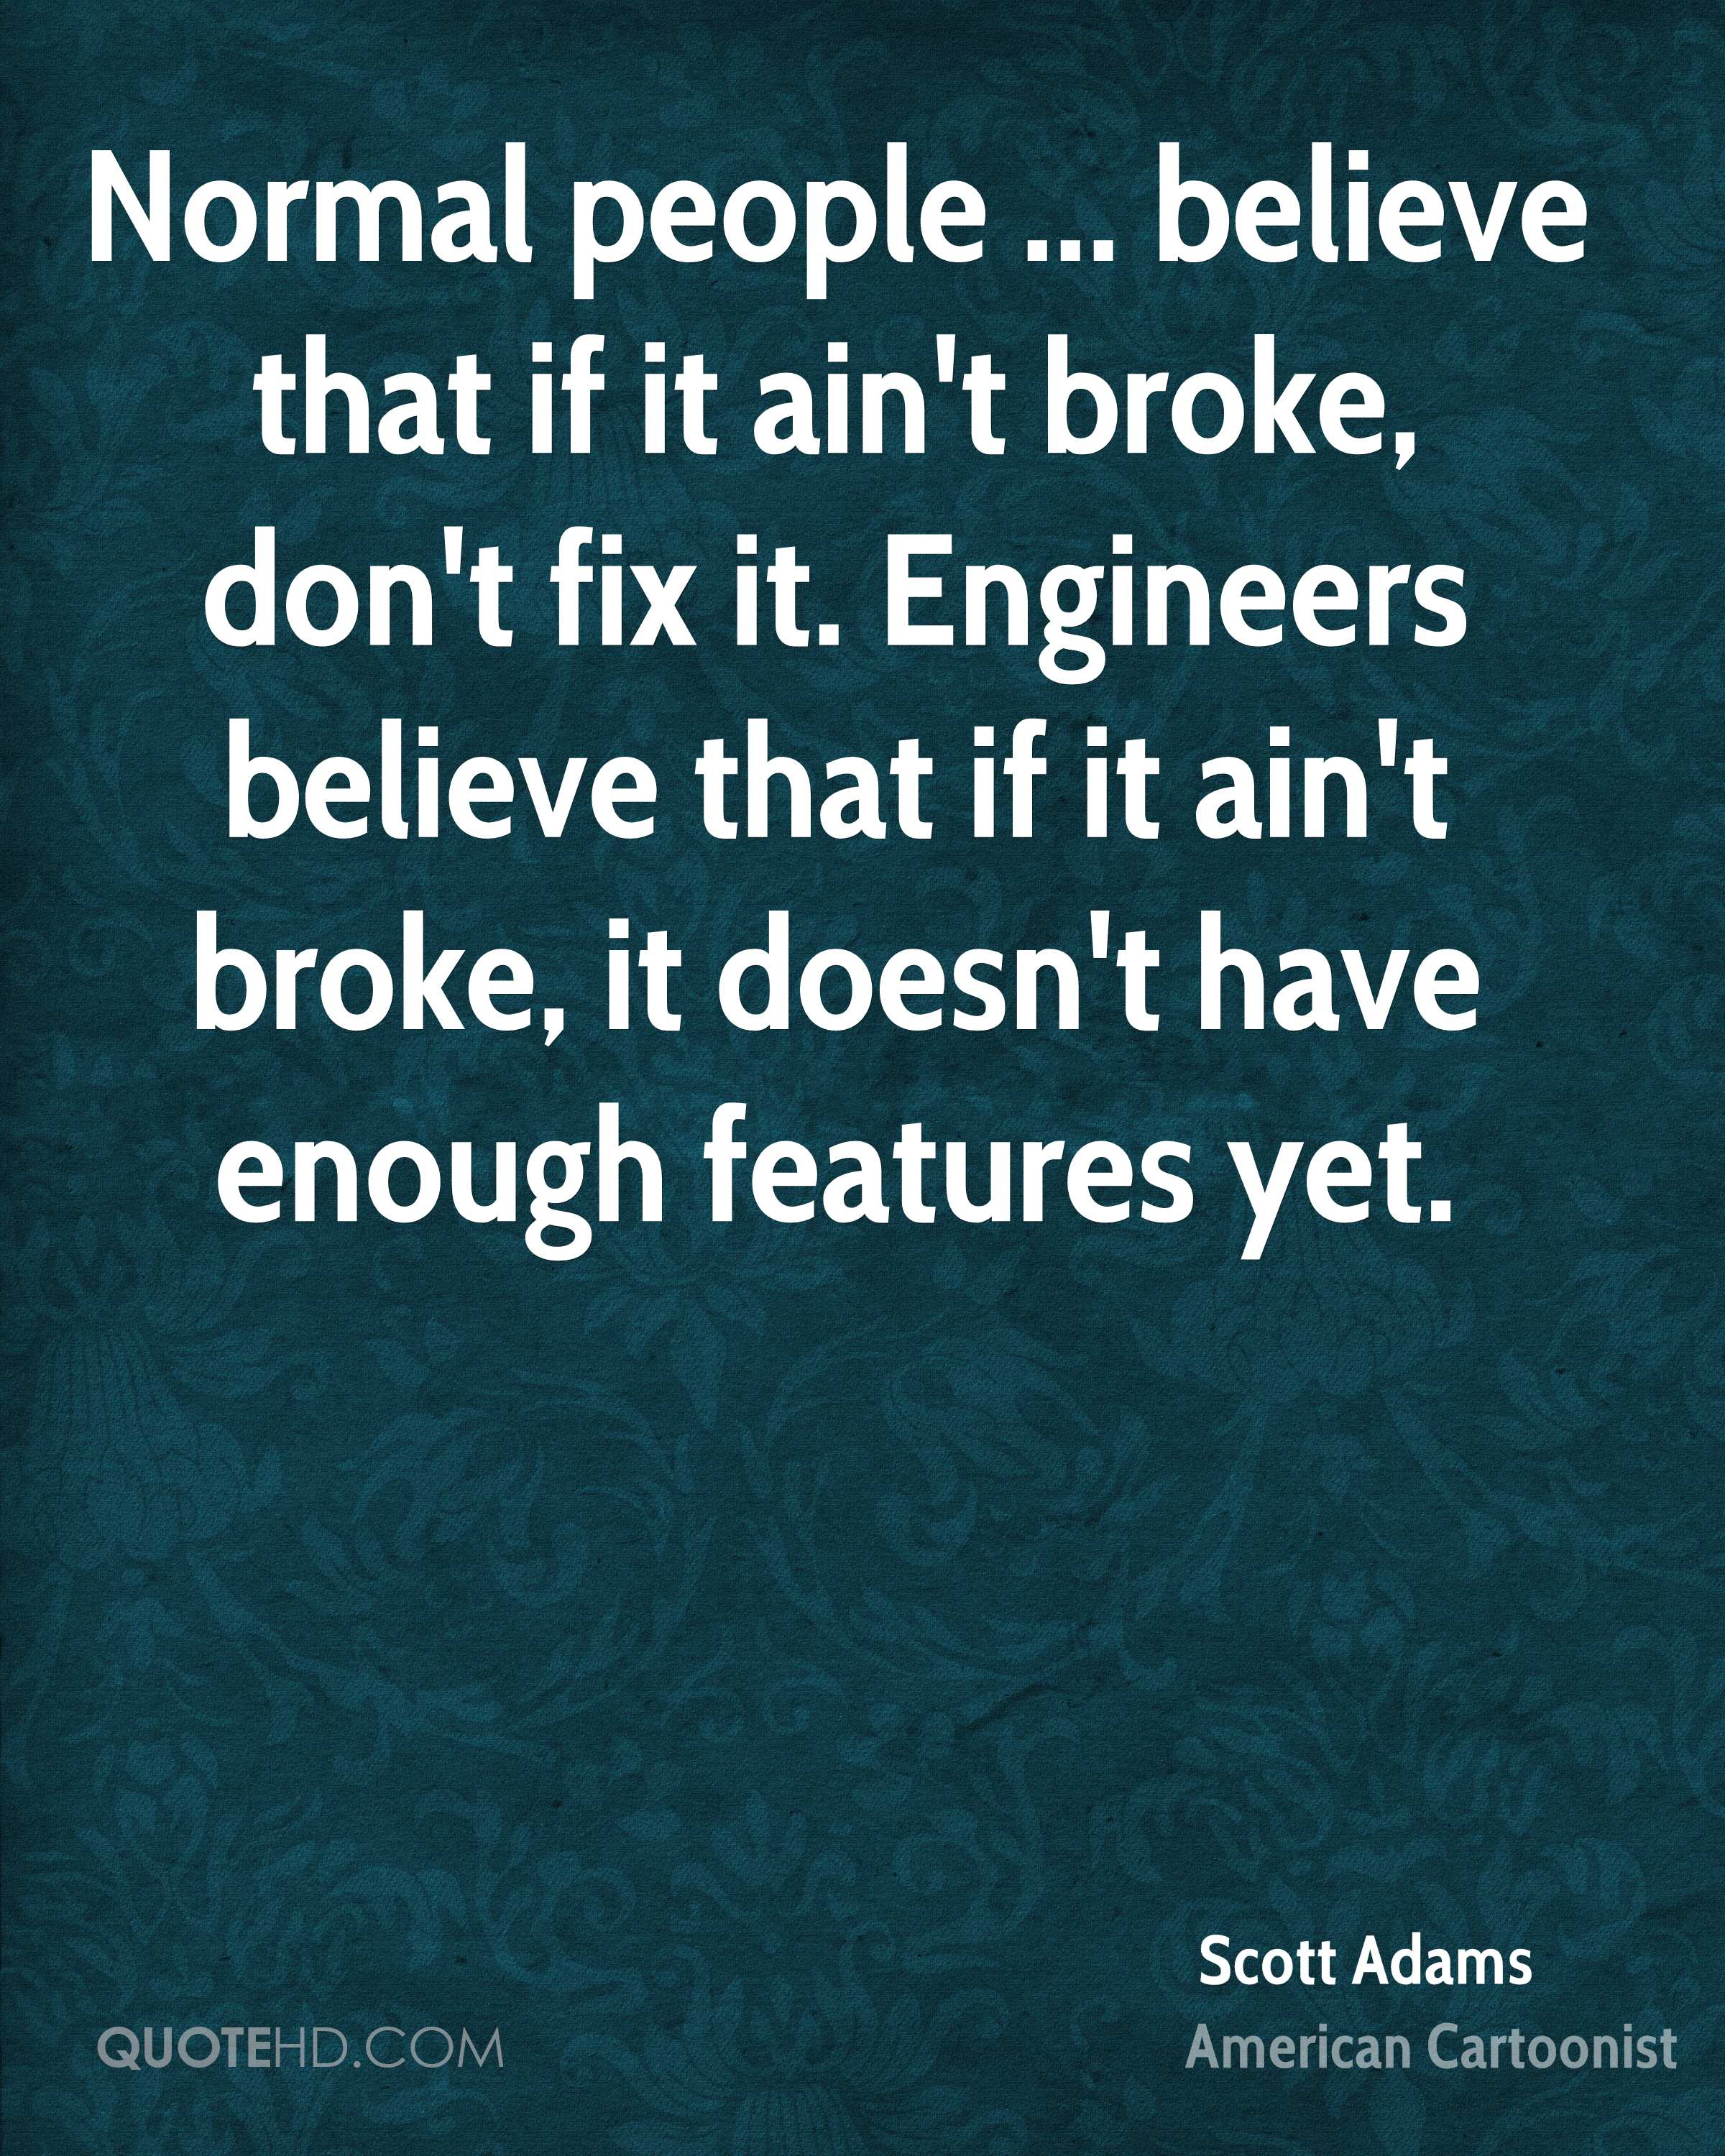 Normal people ... believe that if it ain't broke, don't fix it. Engineers believe that if it ain't broke, it doesn't have enough features yet.